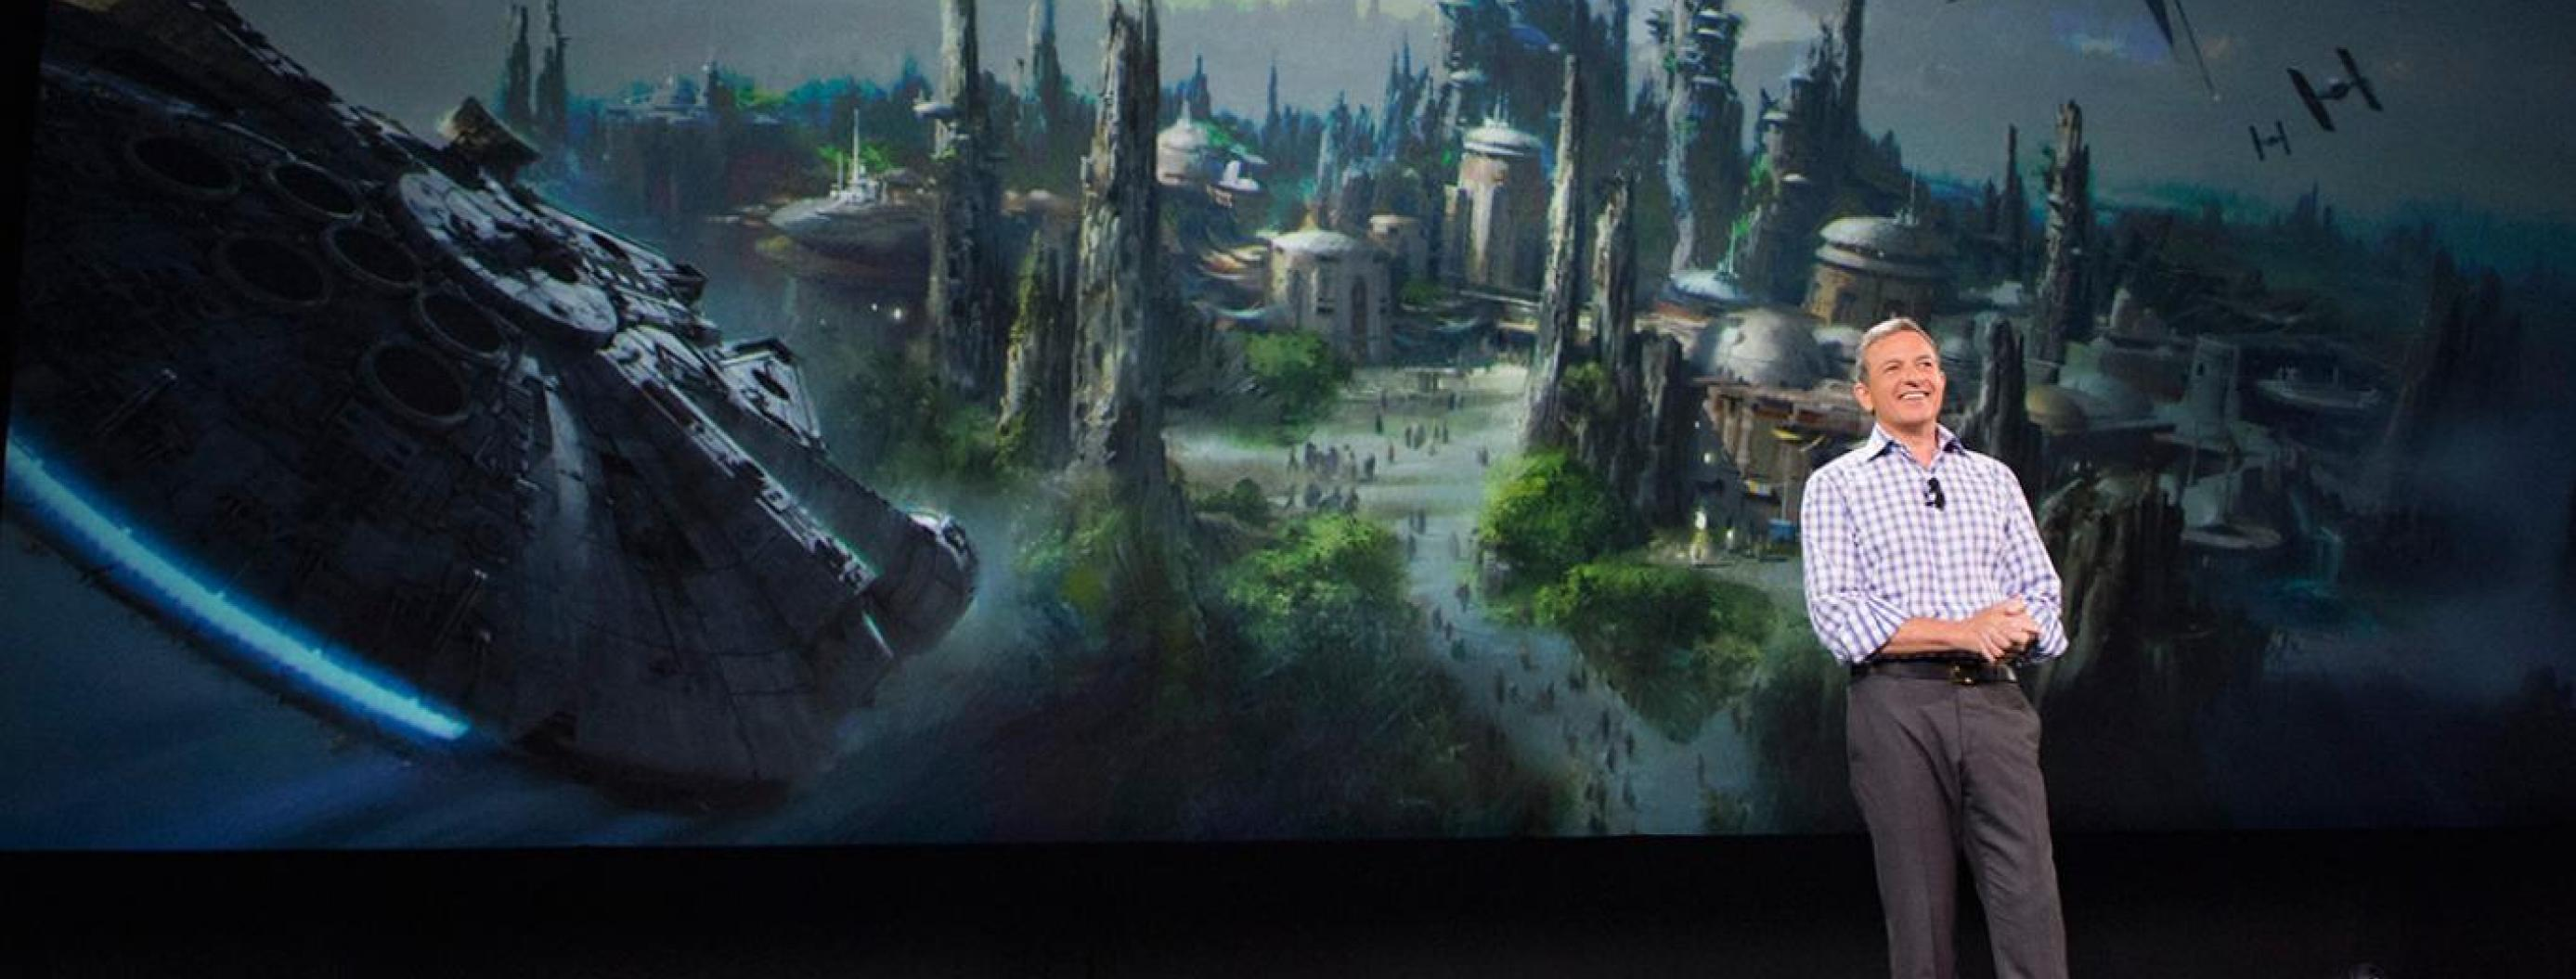 Disney Announces the Opening of an Immersive Star Wars Hotel